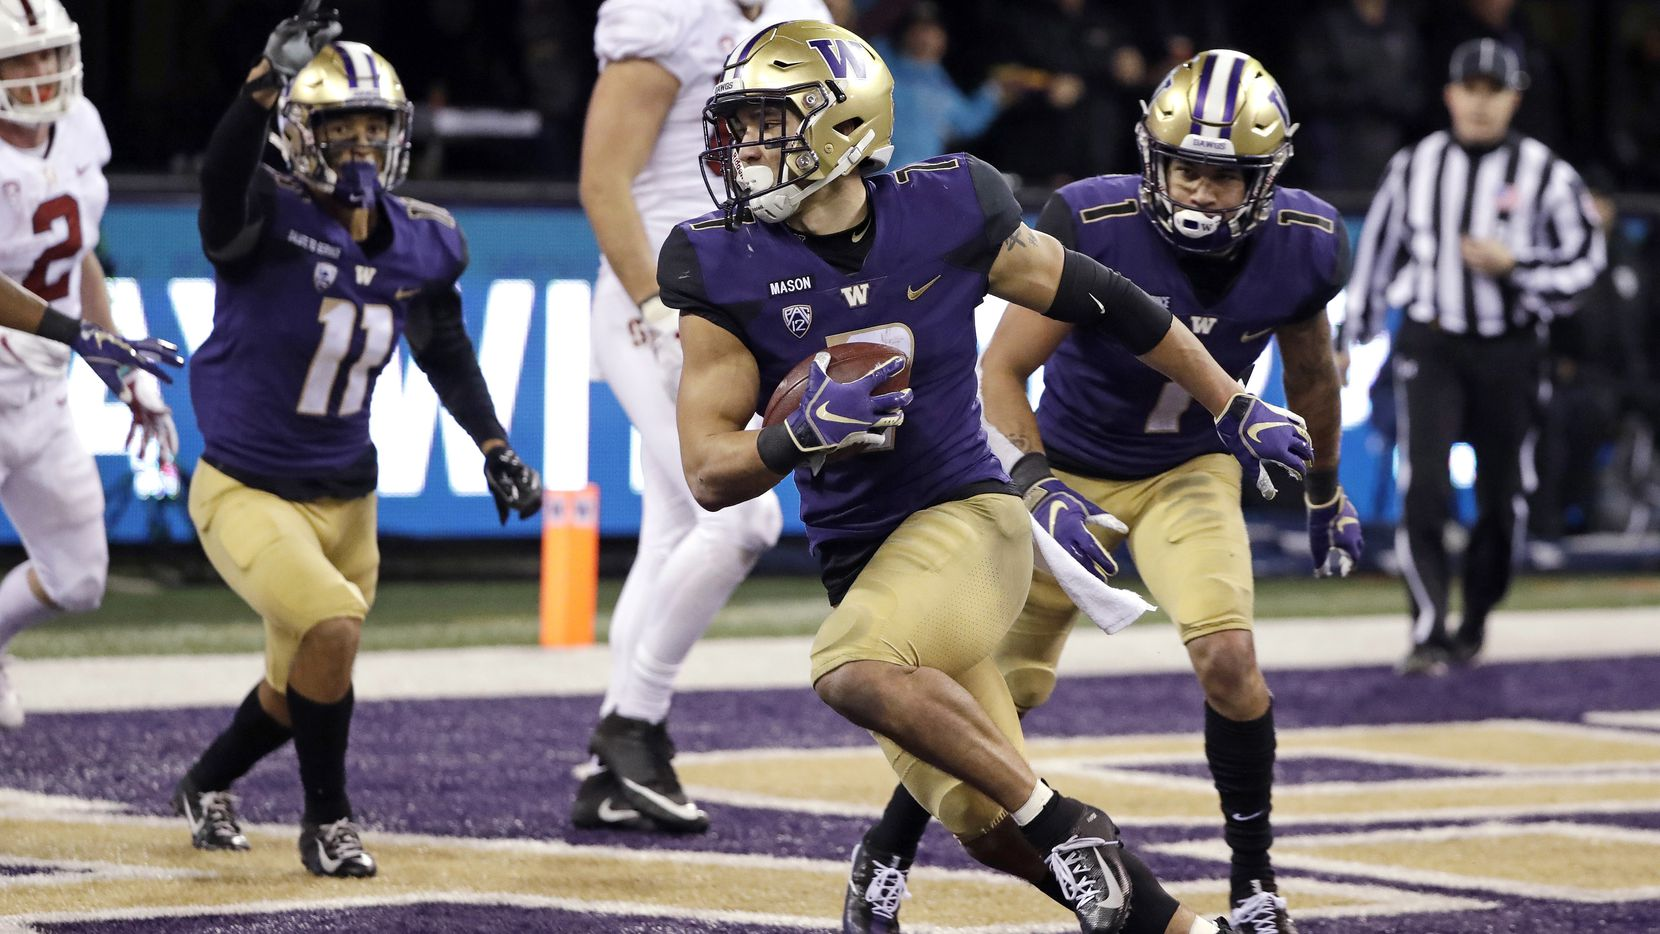 FILE - Washington safety Taylor Rapp (7) comes down with an interception in the end zone on the final play of a game against Stanford on Saturday, Nov. 3, 2018, in Seattle. (AP Photo/Elaine Thompson)